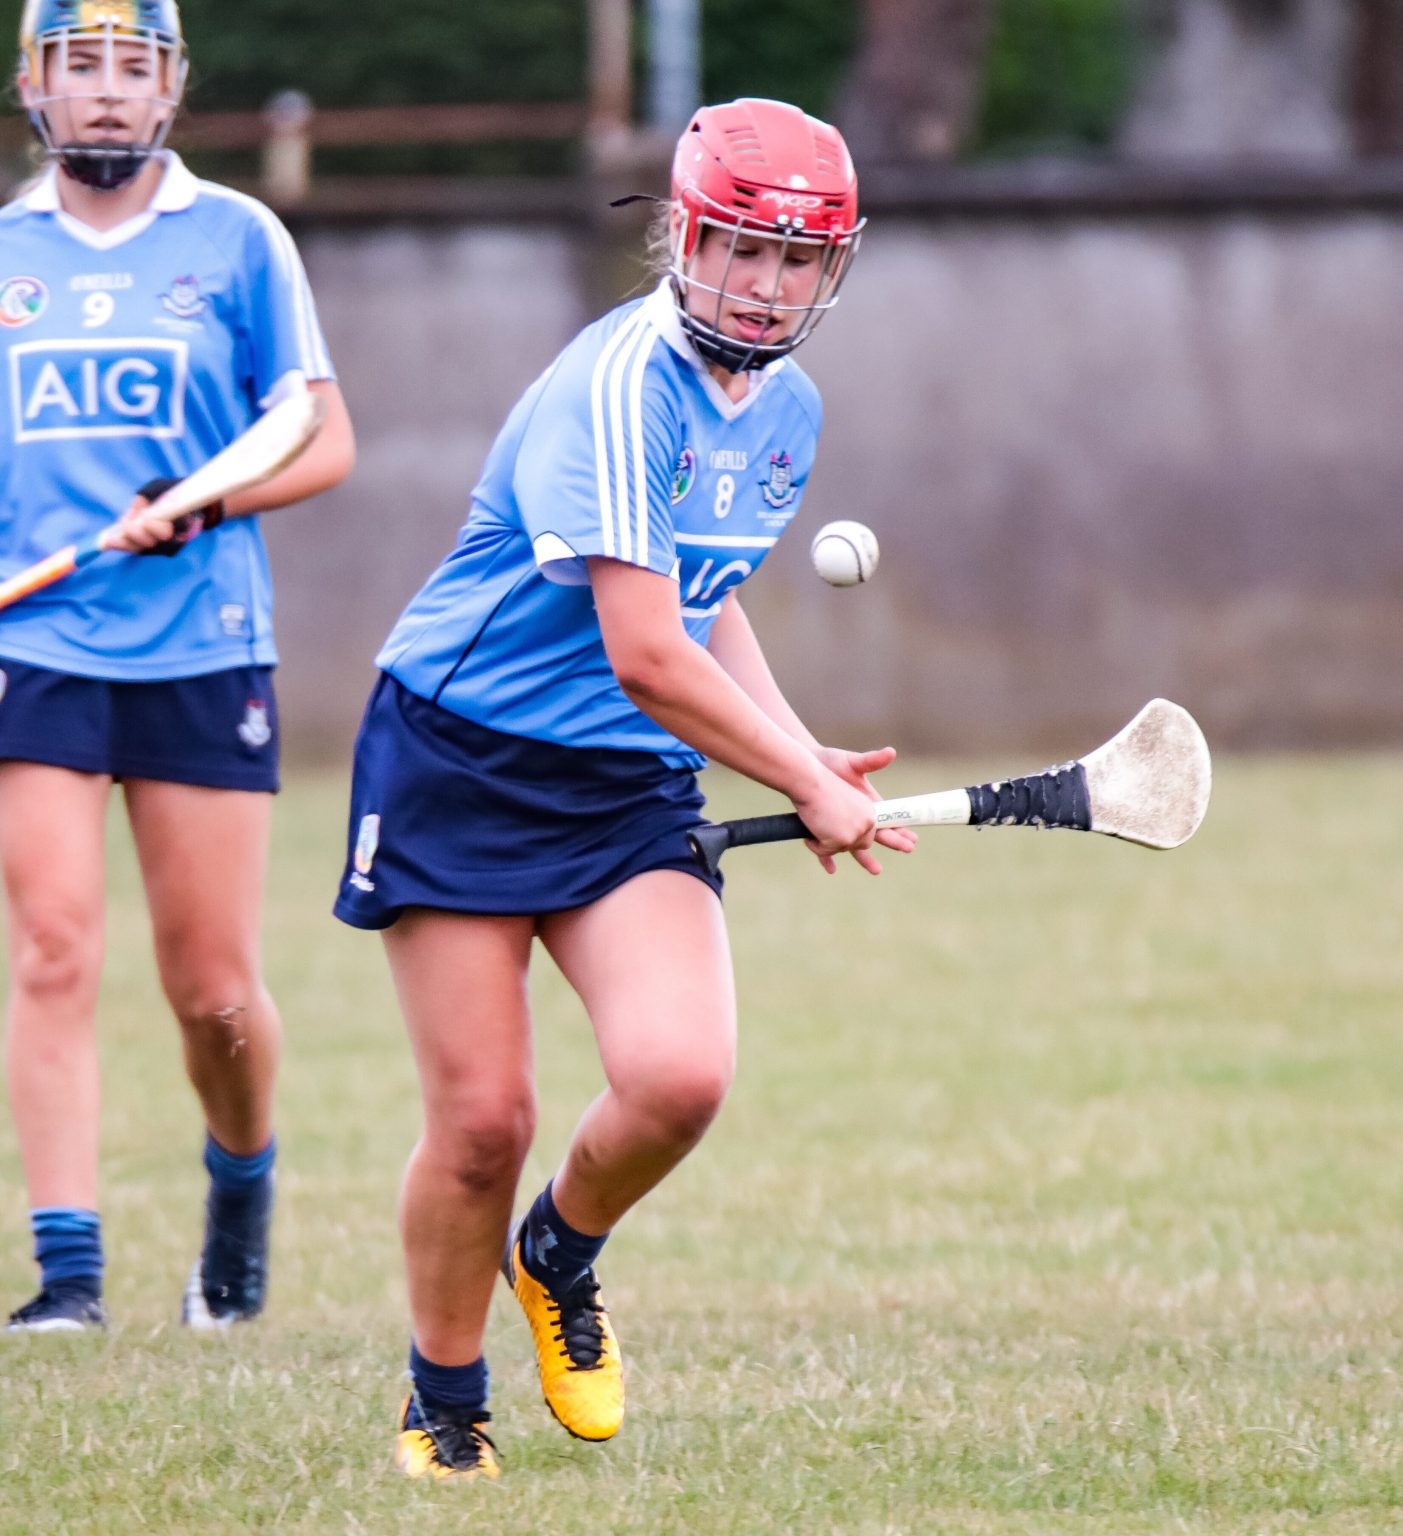 Dublin Camogie Player in sky blue jersey and navy Skort both the Dublin U16A and U16B squads are in All Ireland semi final action